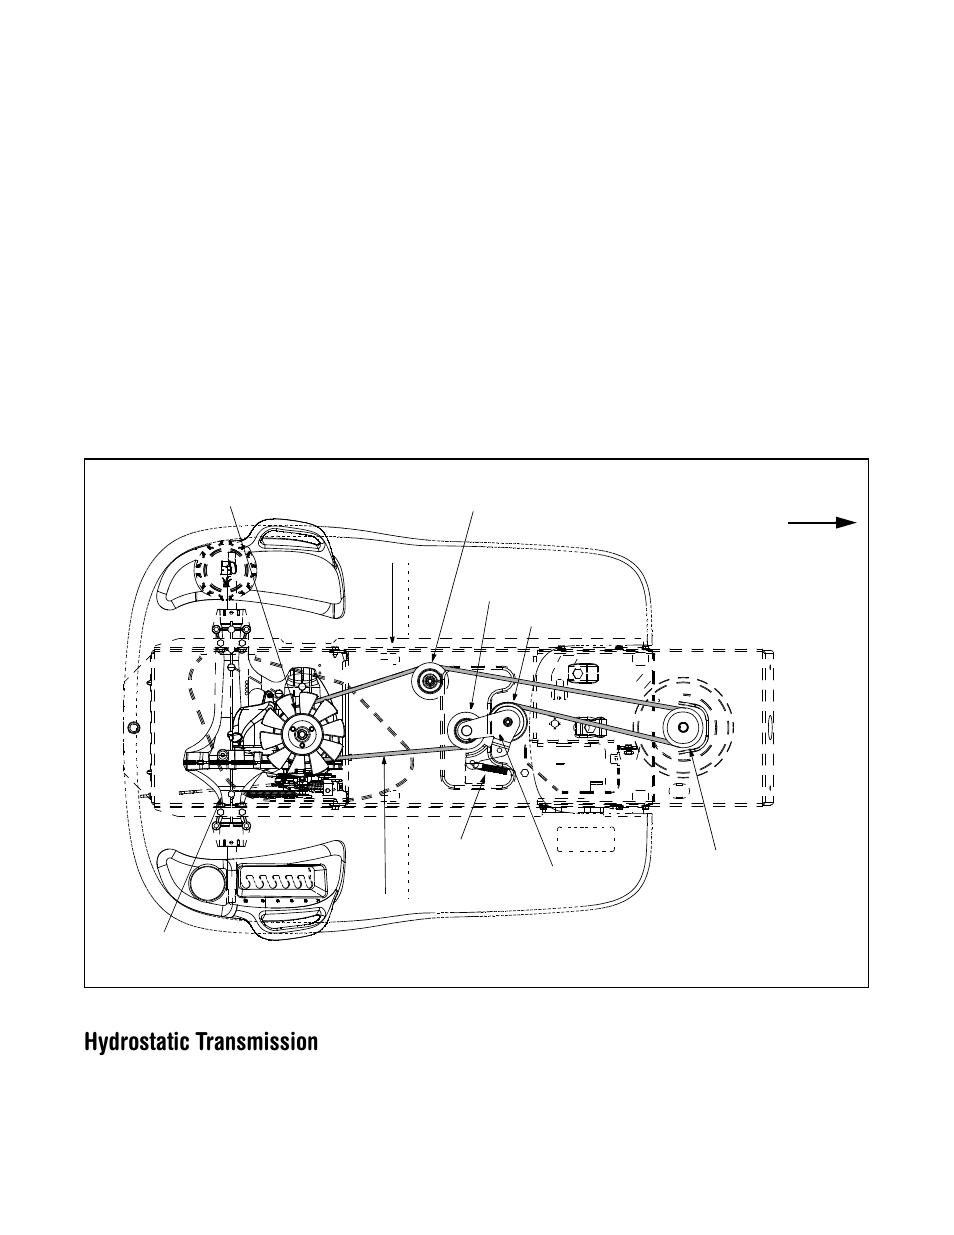 hydrostatic transmission | cub cadet lt1024 user manual | page 23 / 28